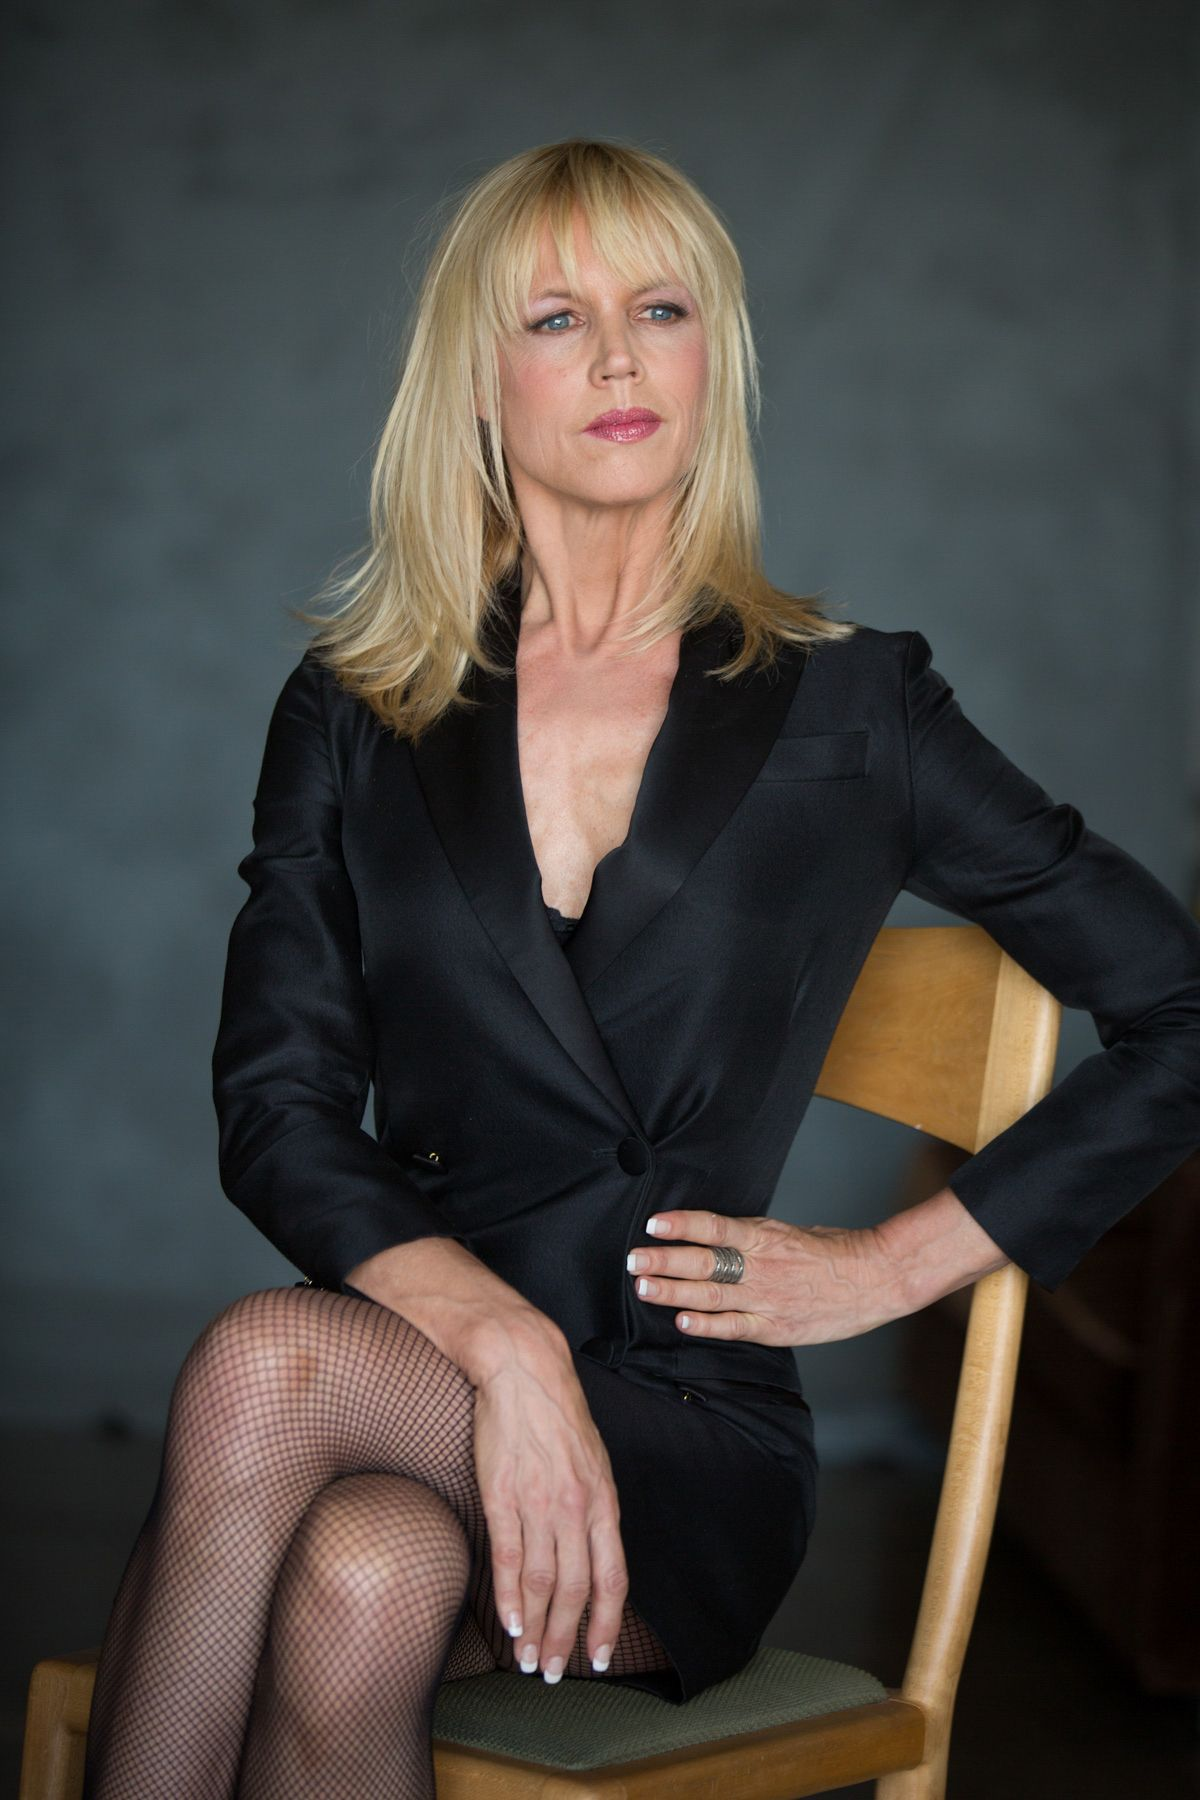 Pin on Fashion over 50